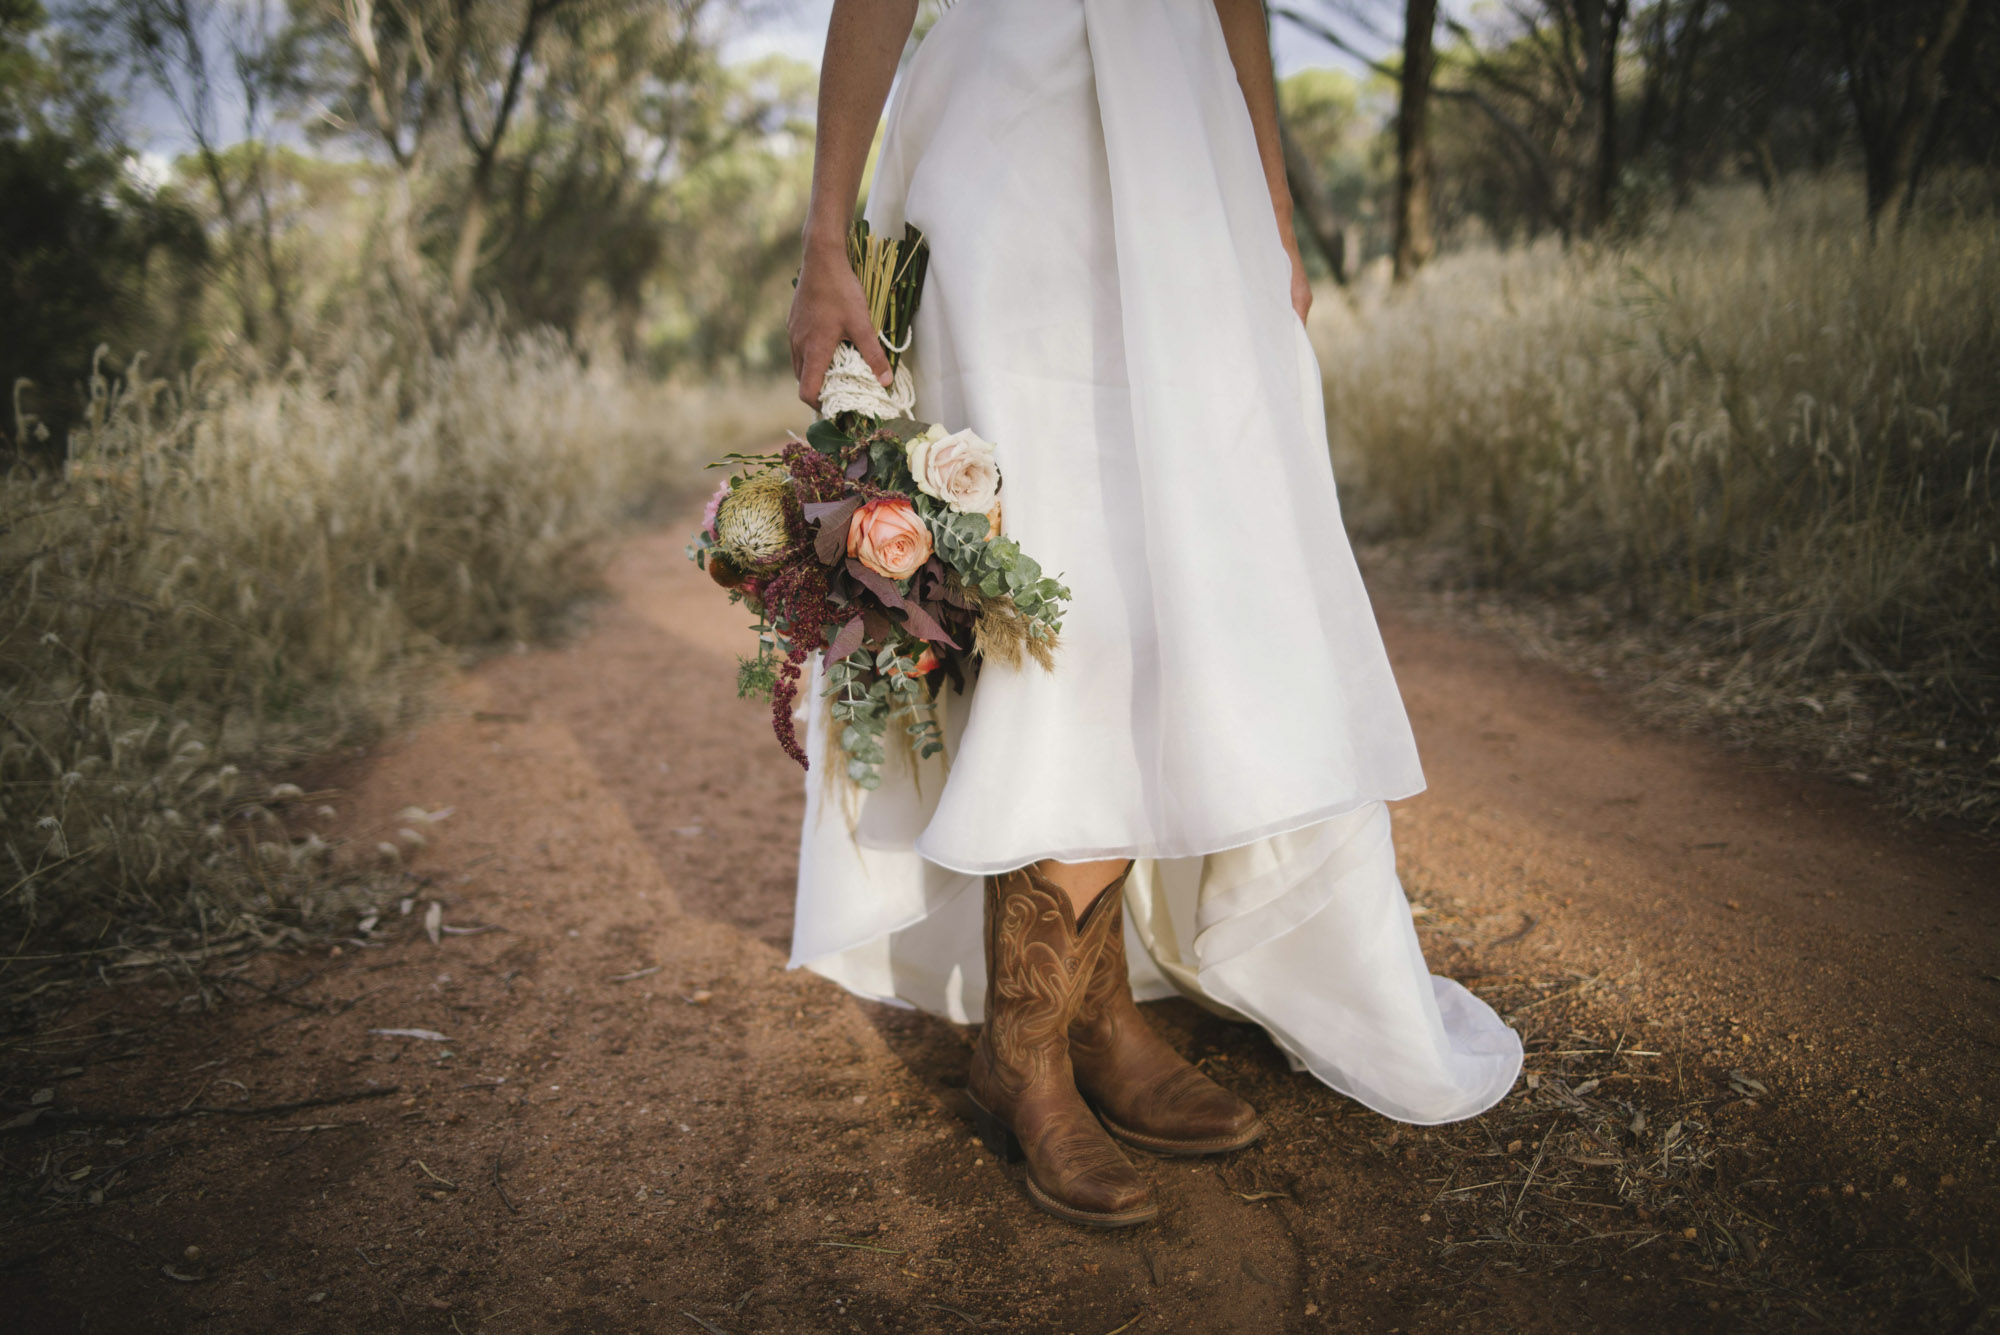 Angie-Roe-Photography-Wedding-Perth-Northam-Wheatbelt-Country-Rural (77).jpg